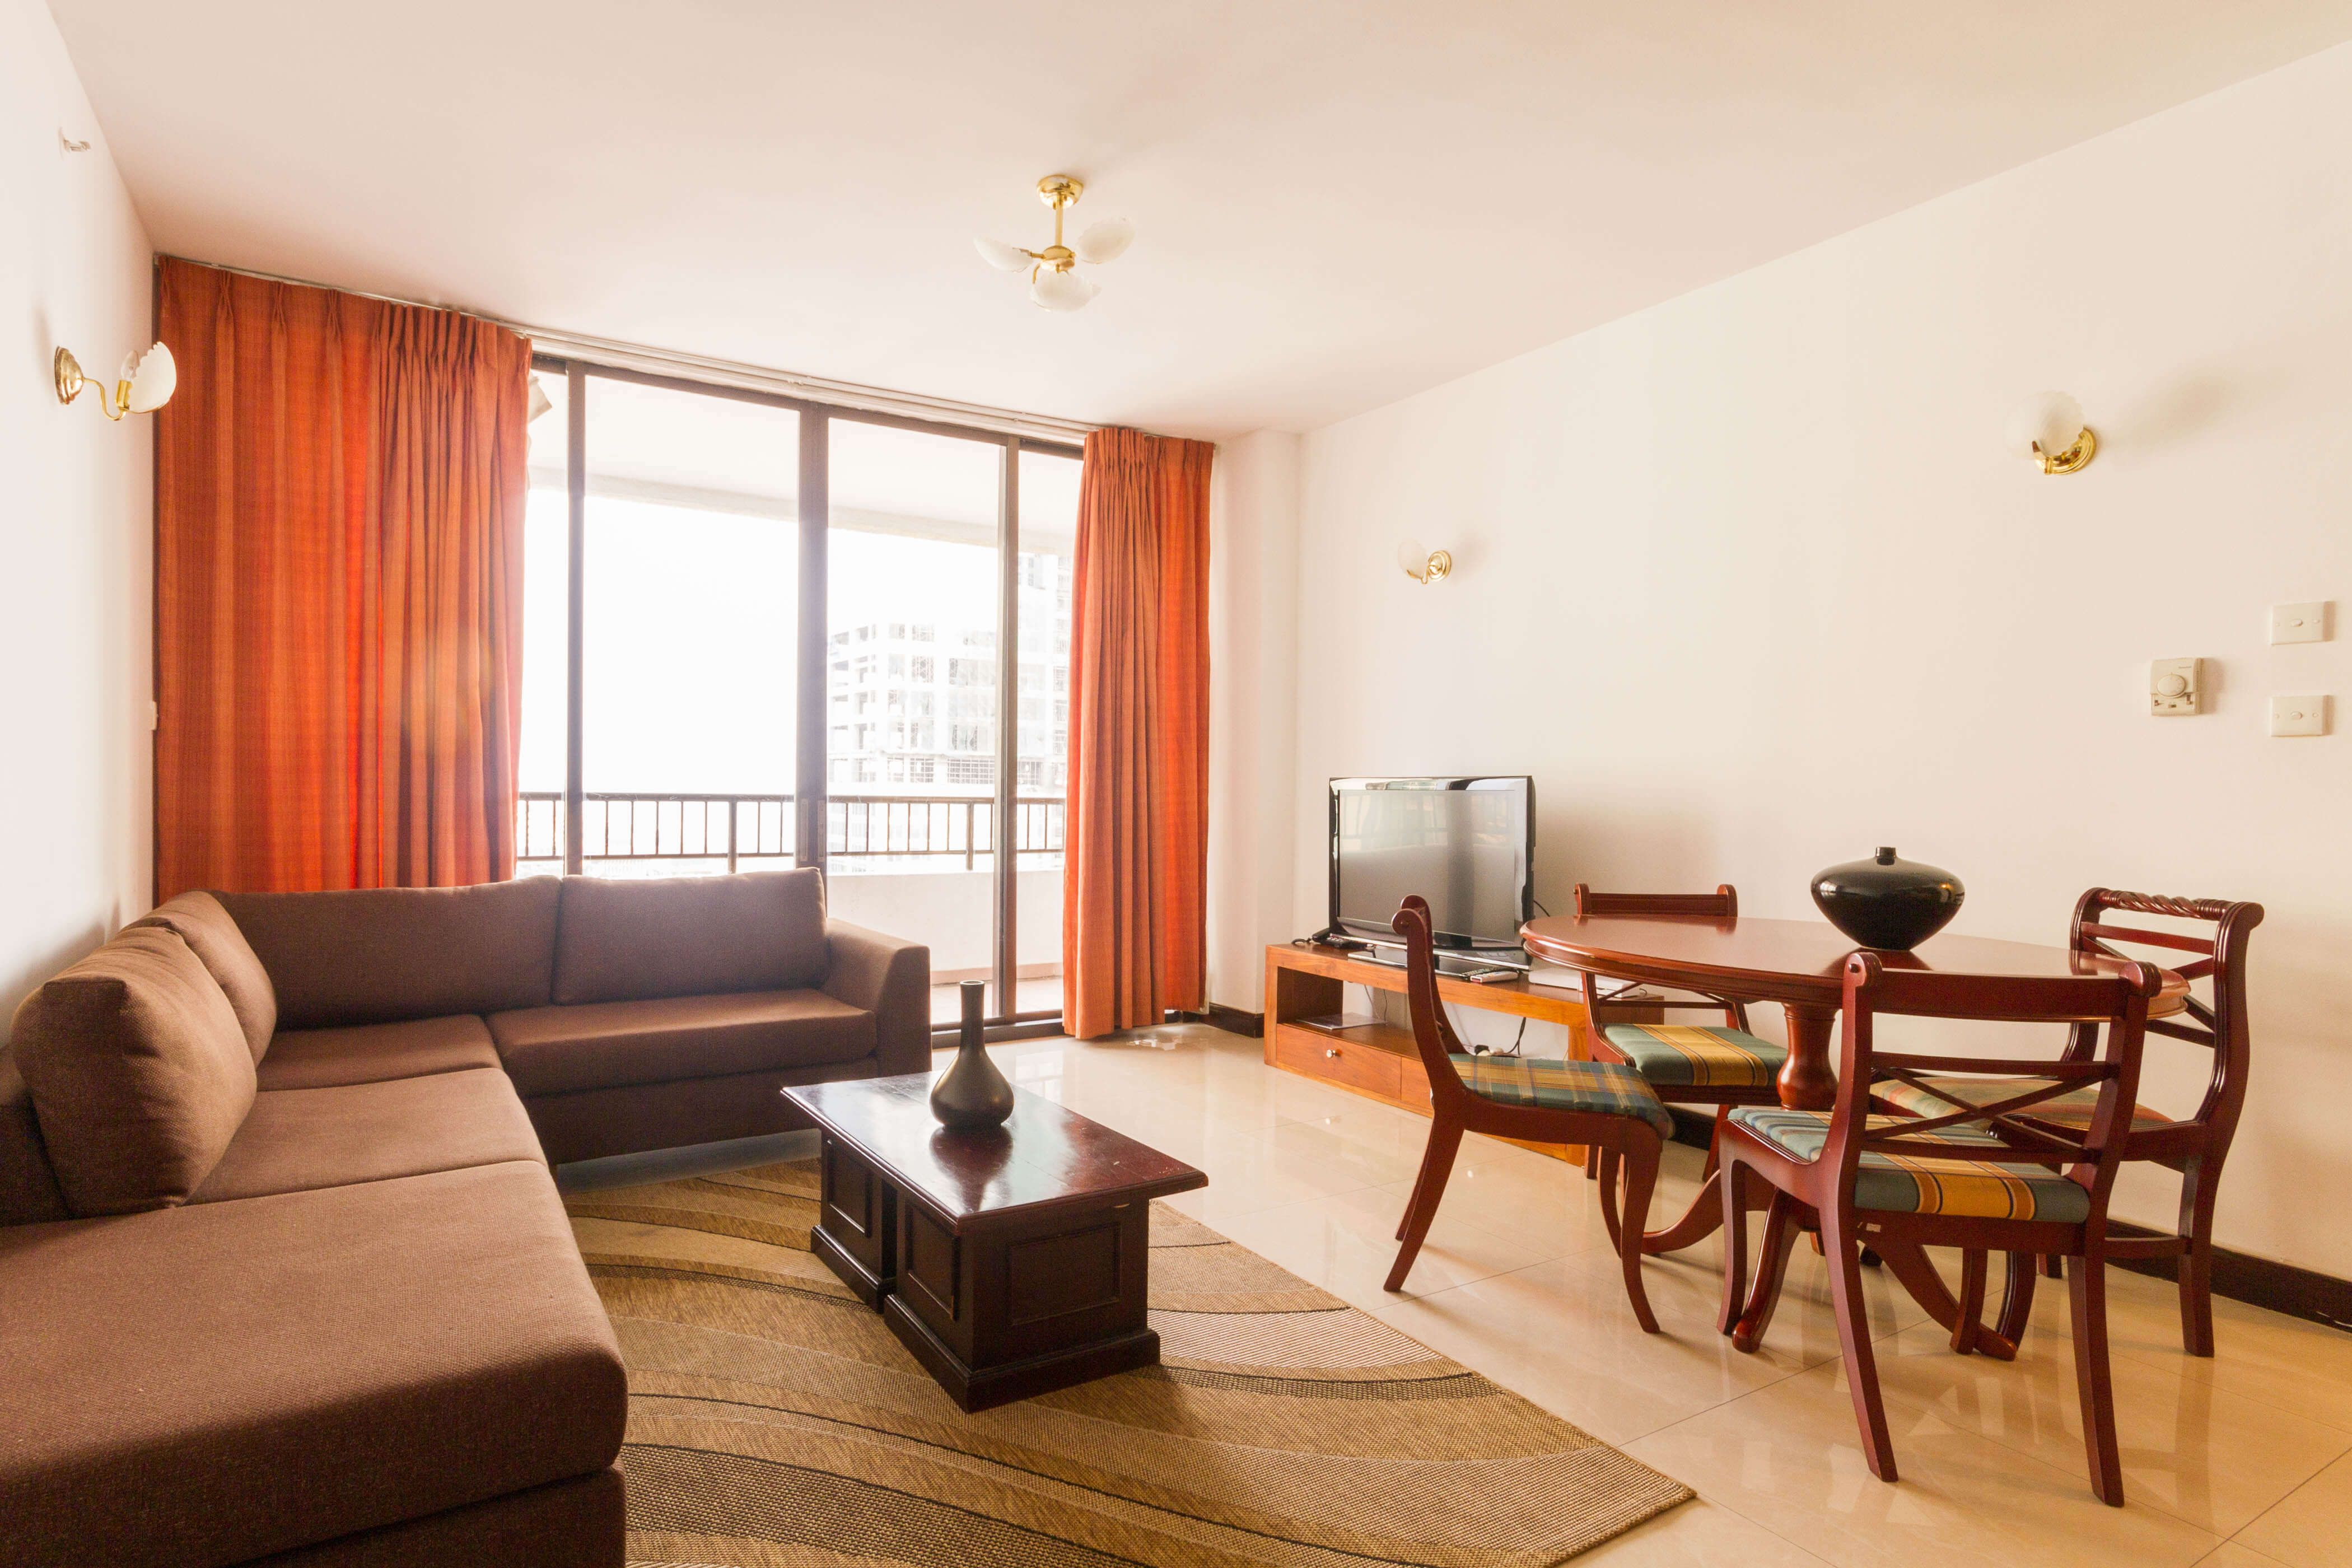 Https Mylankaproperty Com Properties One Bed Room Apartment Rent Colombo New Property One Bed Room Apartment For Apartment Room Apartments For Rent One Bed